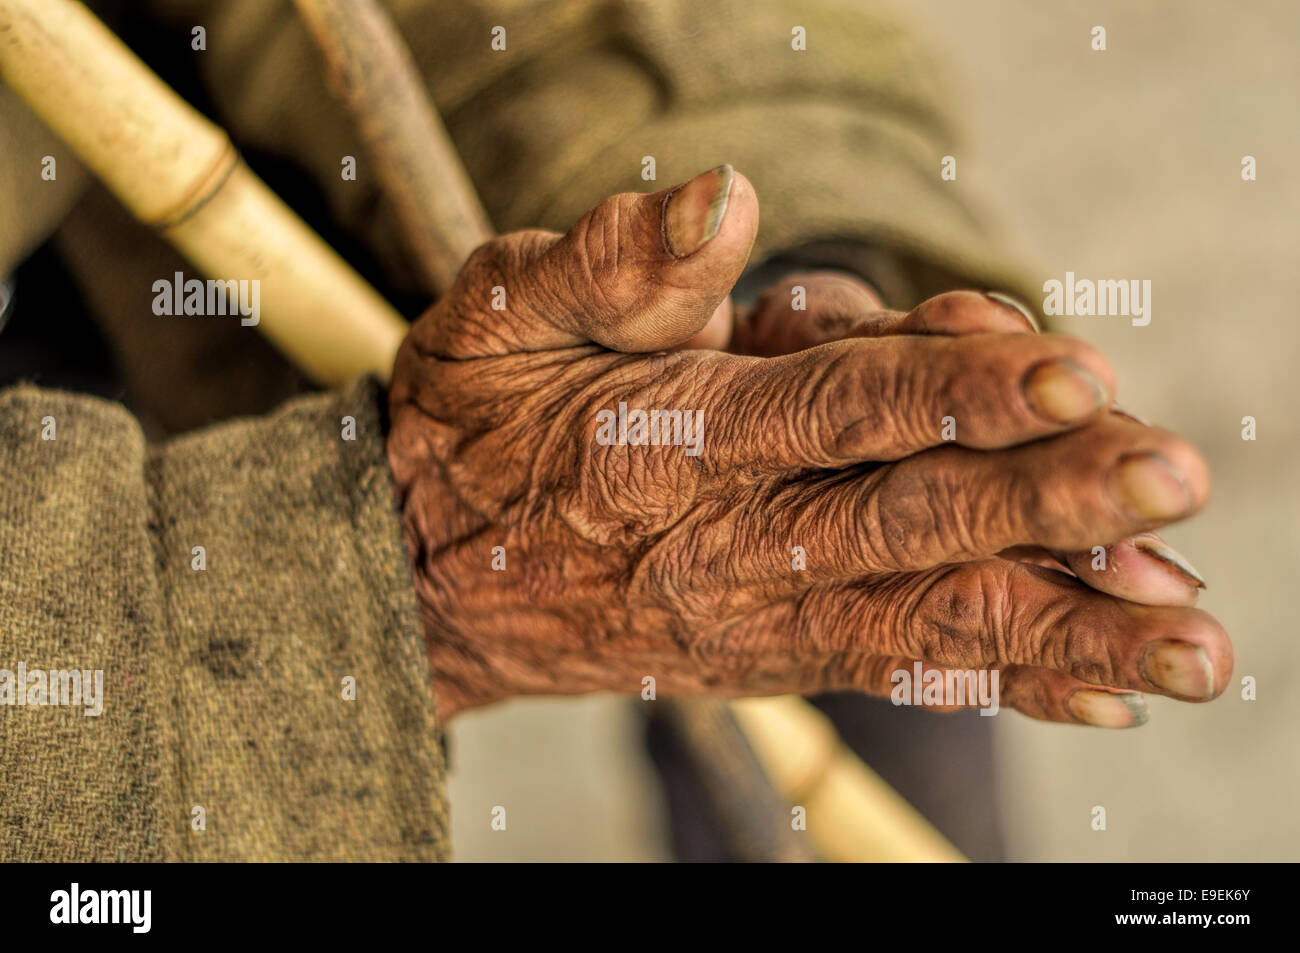 Wrinkled hands of an Indian holding a stick - Stock Image